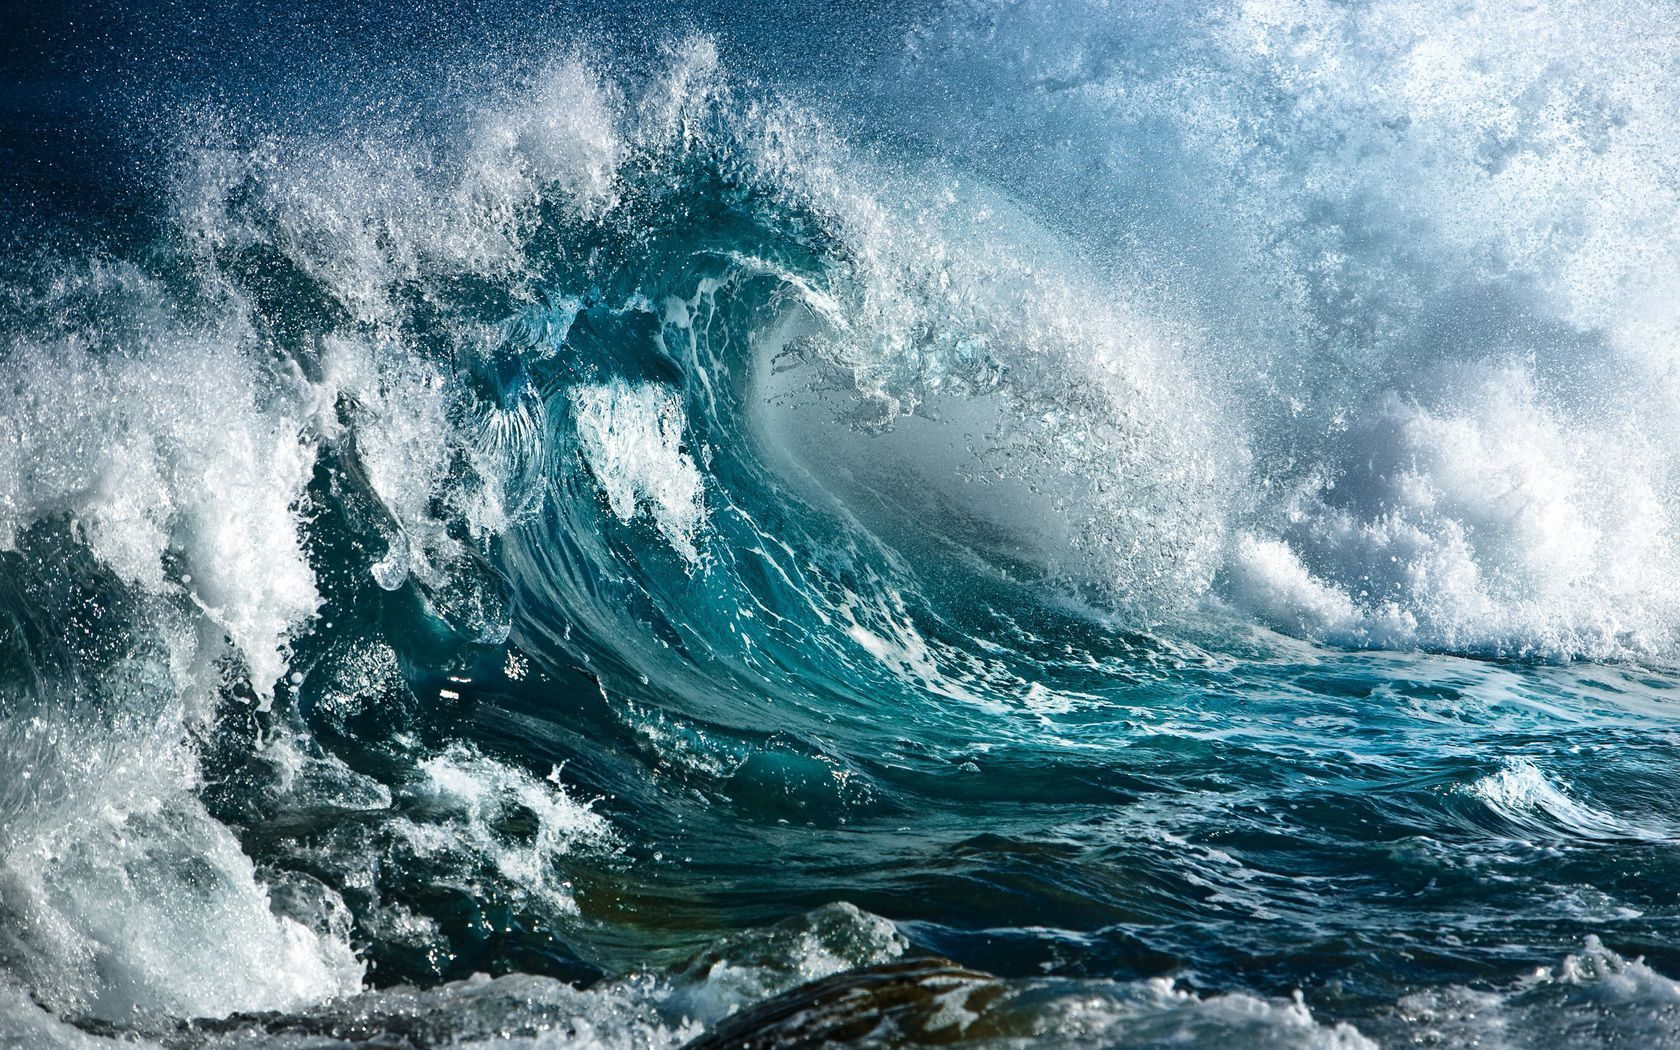 Ocean Waves Wallpapers Top Free Ocean Waves Backgrounds